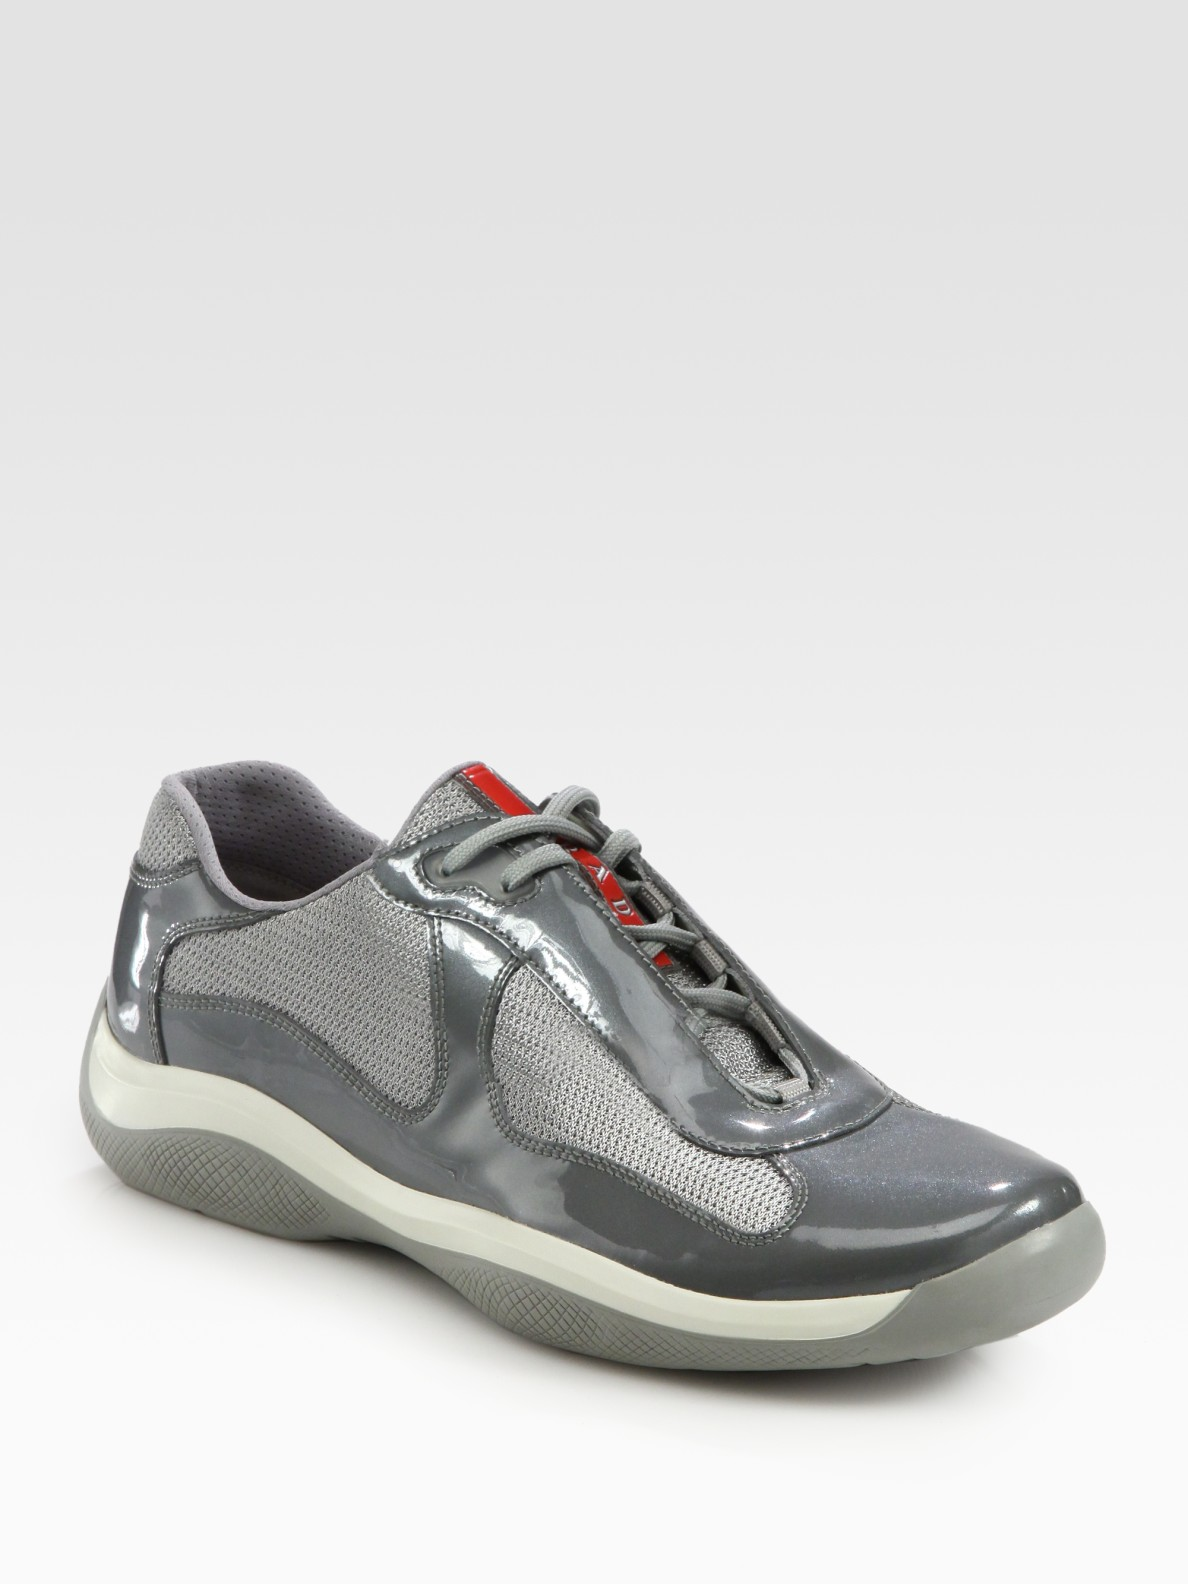 Americas Cup low-top sneakers - Black Prada 1c6iwm